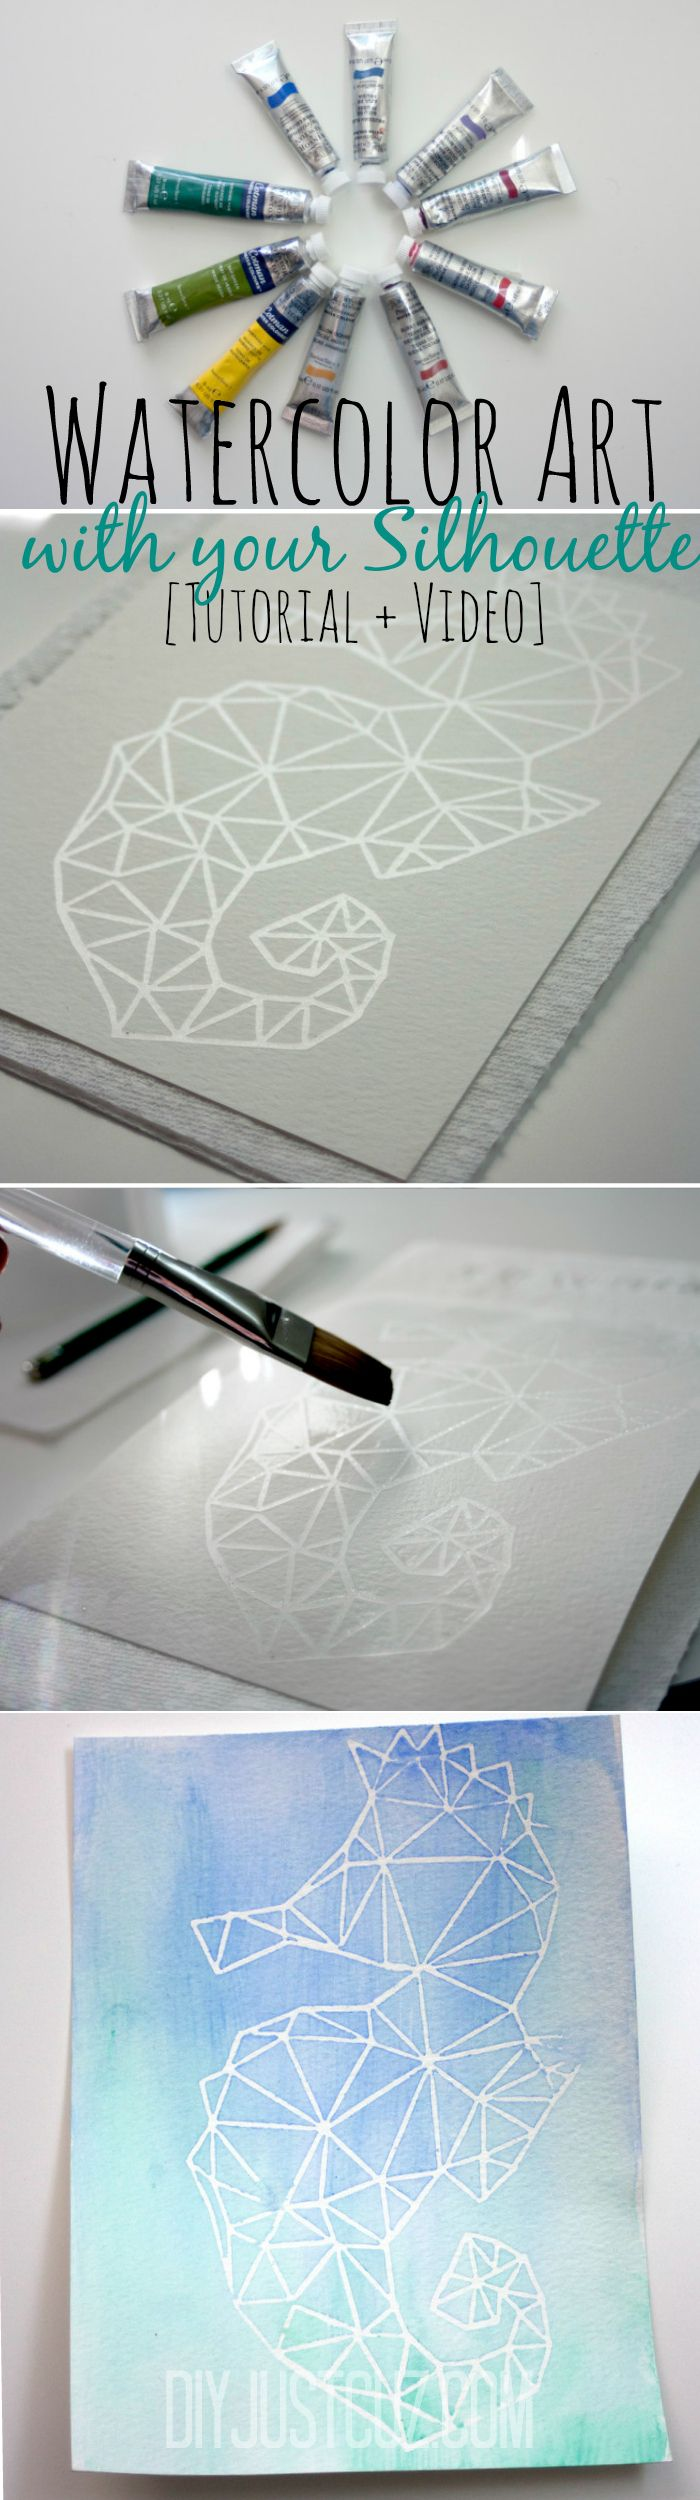 Create beautiful watercolor art pieces with your Silhouette! With just a few supplies & your Silhouette, you can have unique artwork in just a few minutes! @diyjustcuz